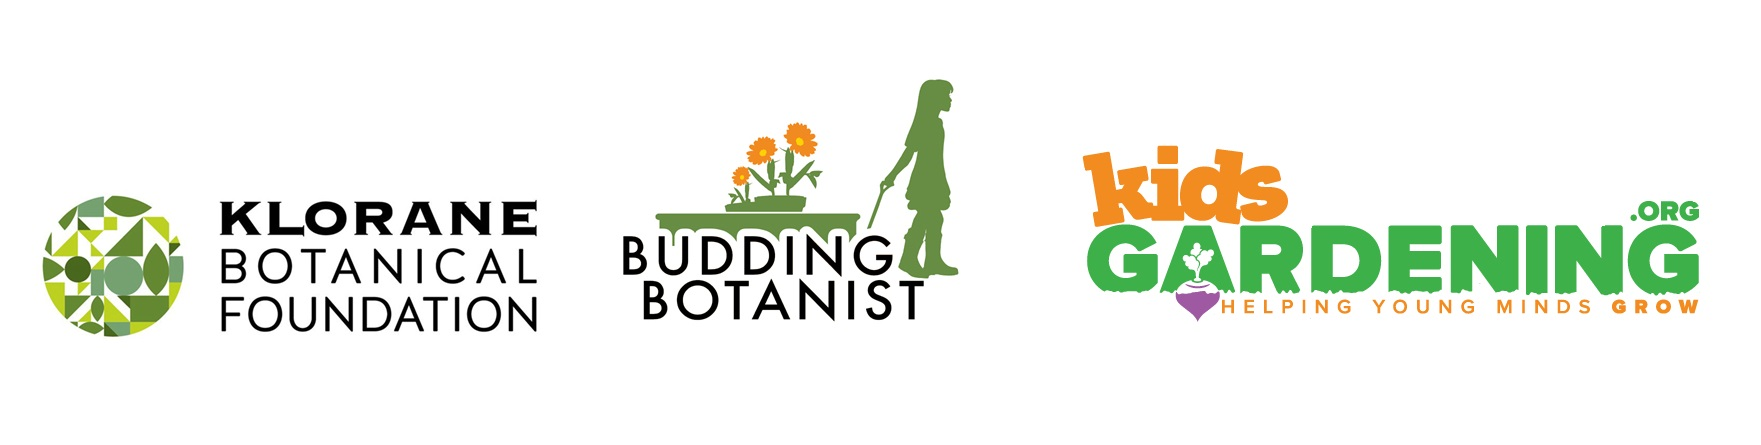 Budding Botanist 2019 Grant Winners Announced